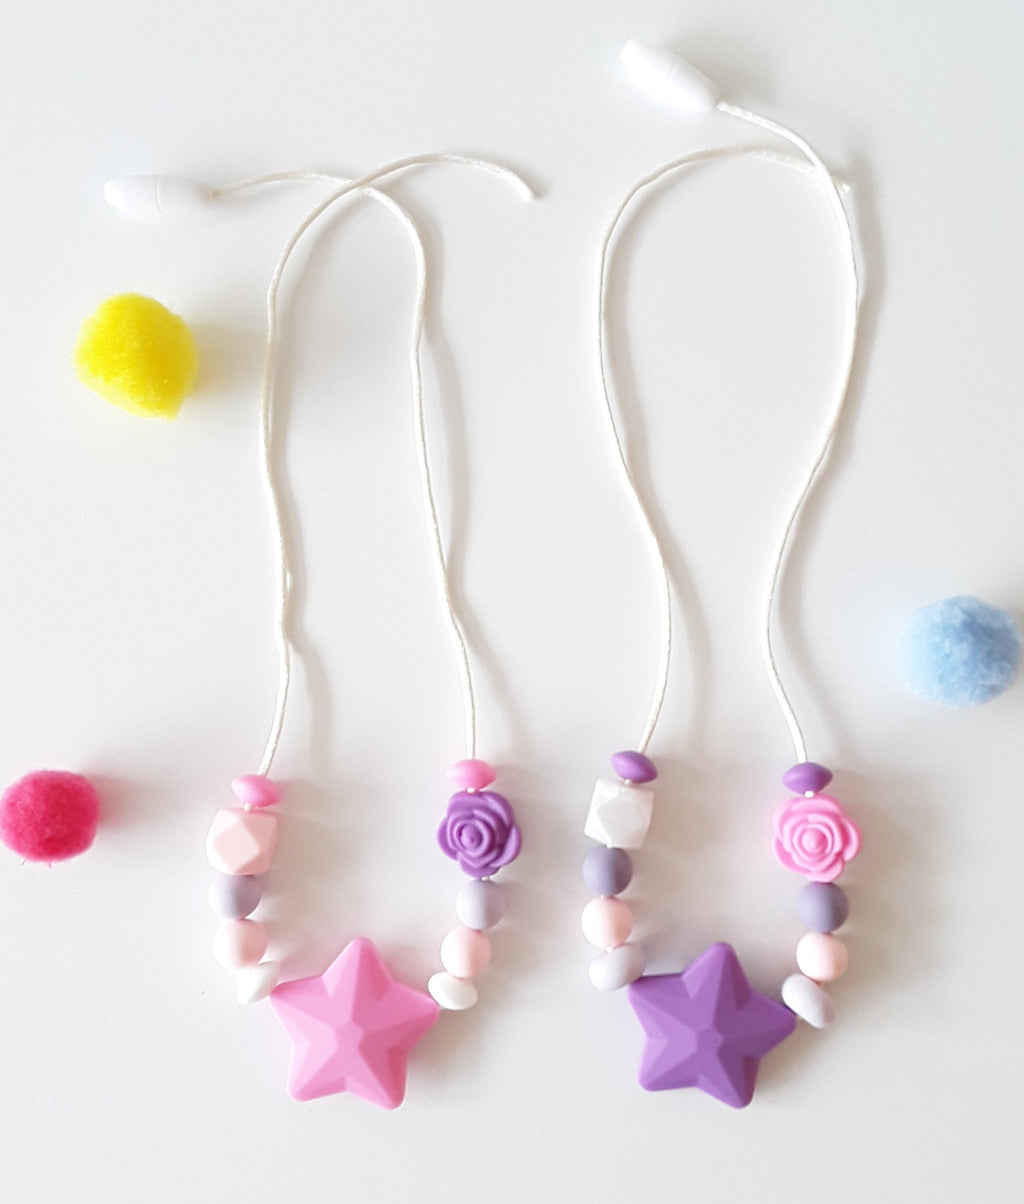 Silicone Necklace d.i.y kit - kids